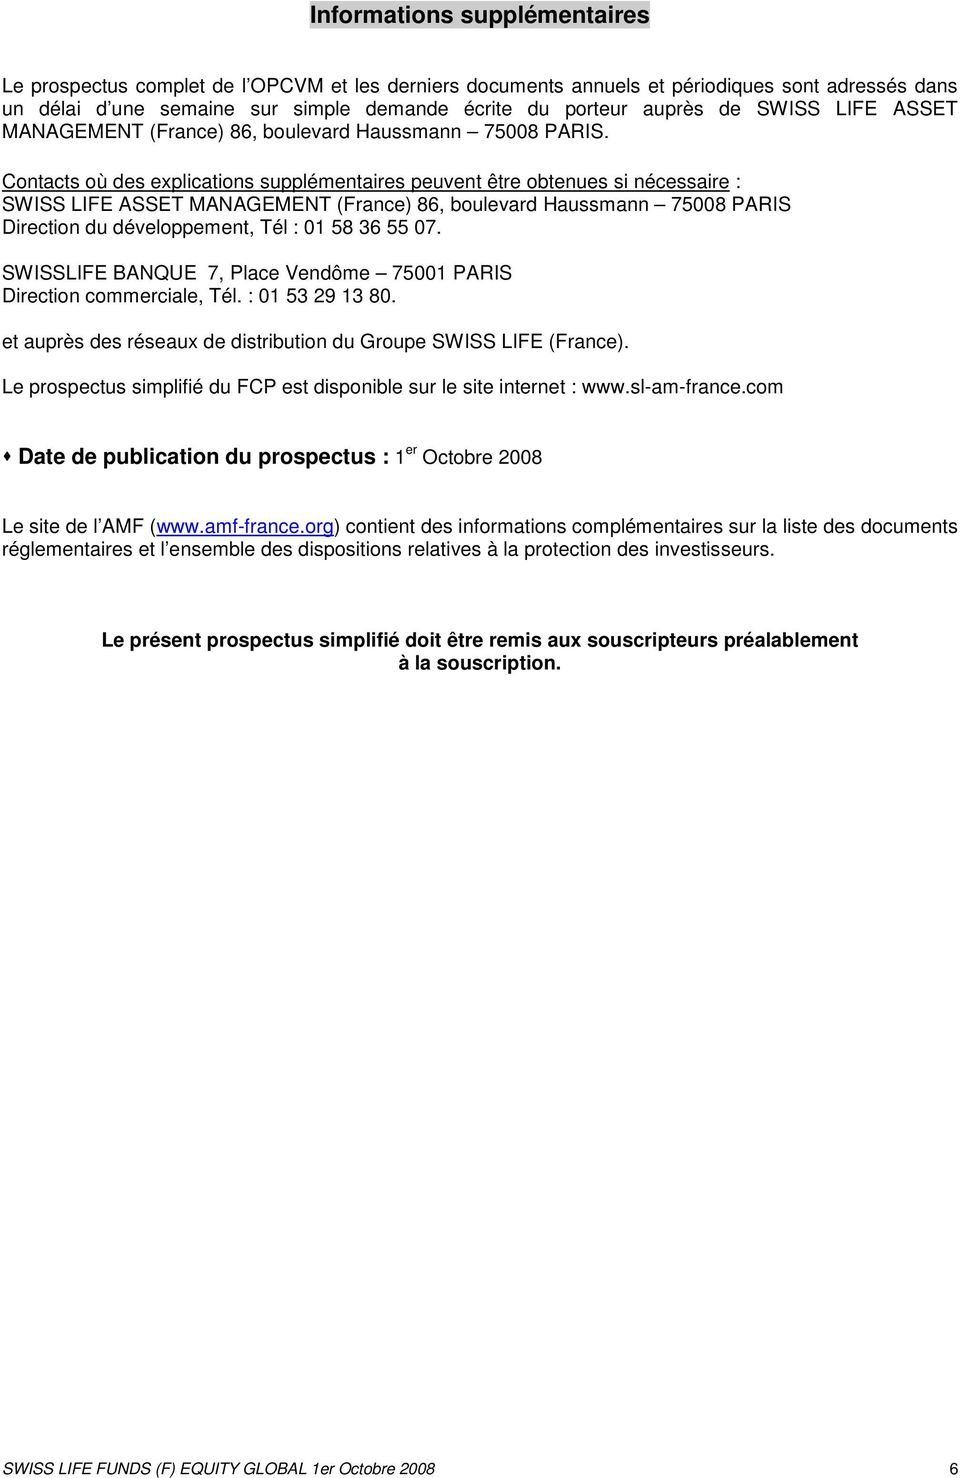 Contacts où des explications supplémentaires peuvent être obtenues si nécessaire : SWISS LIFE ASSET MANAGEMENT (France) 86, boulevard Haussmann 75008 PARIS Direction du développement, Tél : 01 58 36